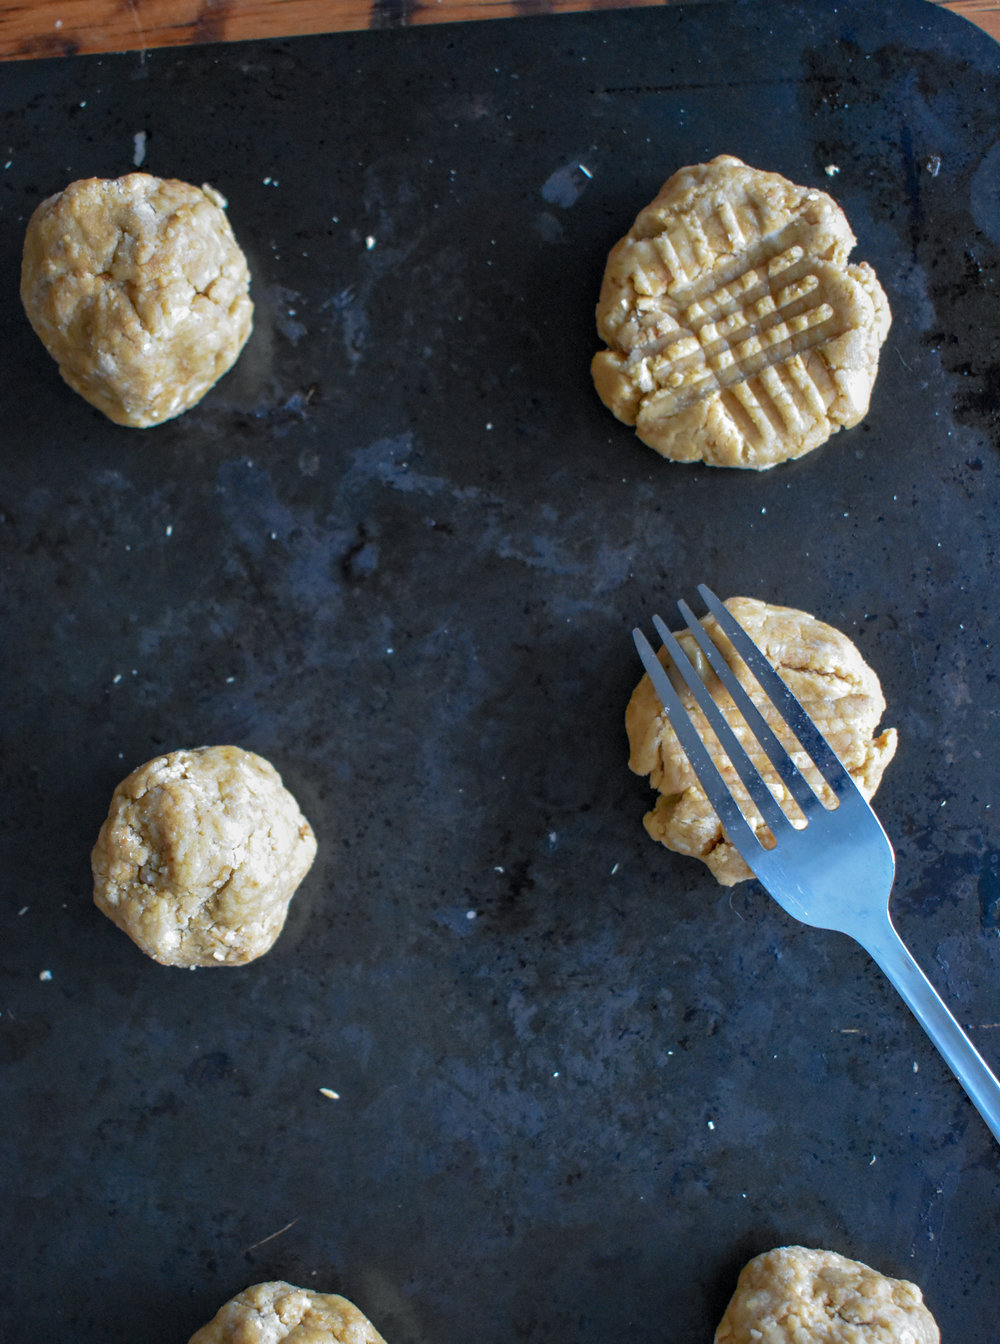 3. Scoop out large balls of dough and roll them in your hand and place on an oil coated pan or parchment-paper lined sheet. Press the cookies with a fork in two directions making a small grid. Bake at 350F for 12-14 minutes until starting to golden brown.